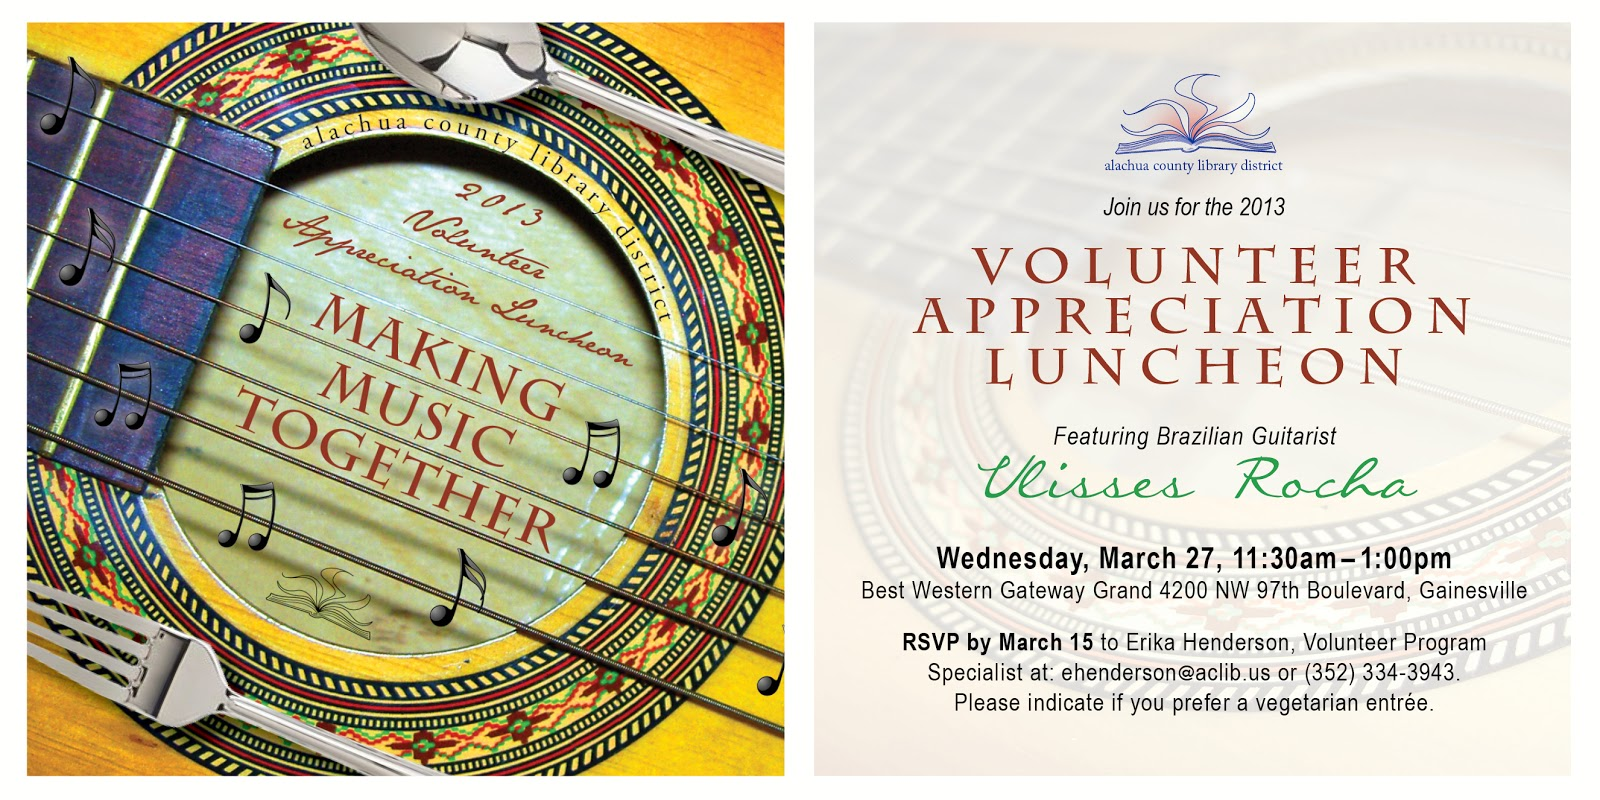 Library Volunteer Appreciation Luncheon Invitation Program Twice